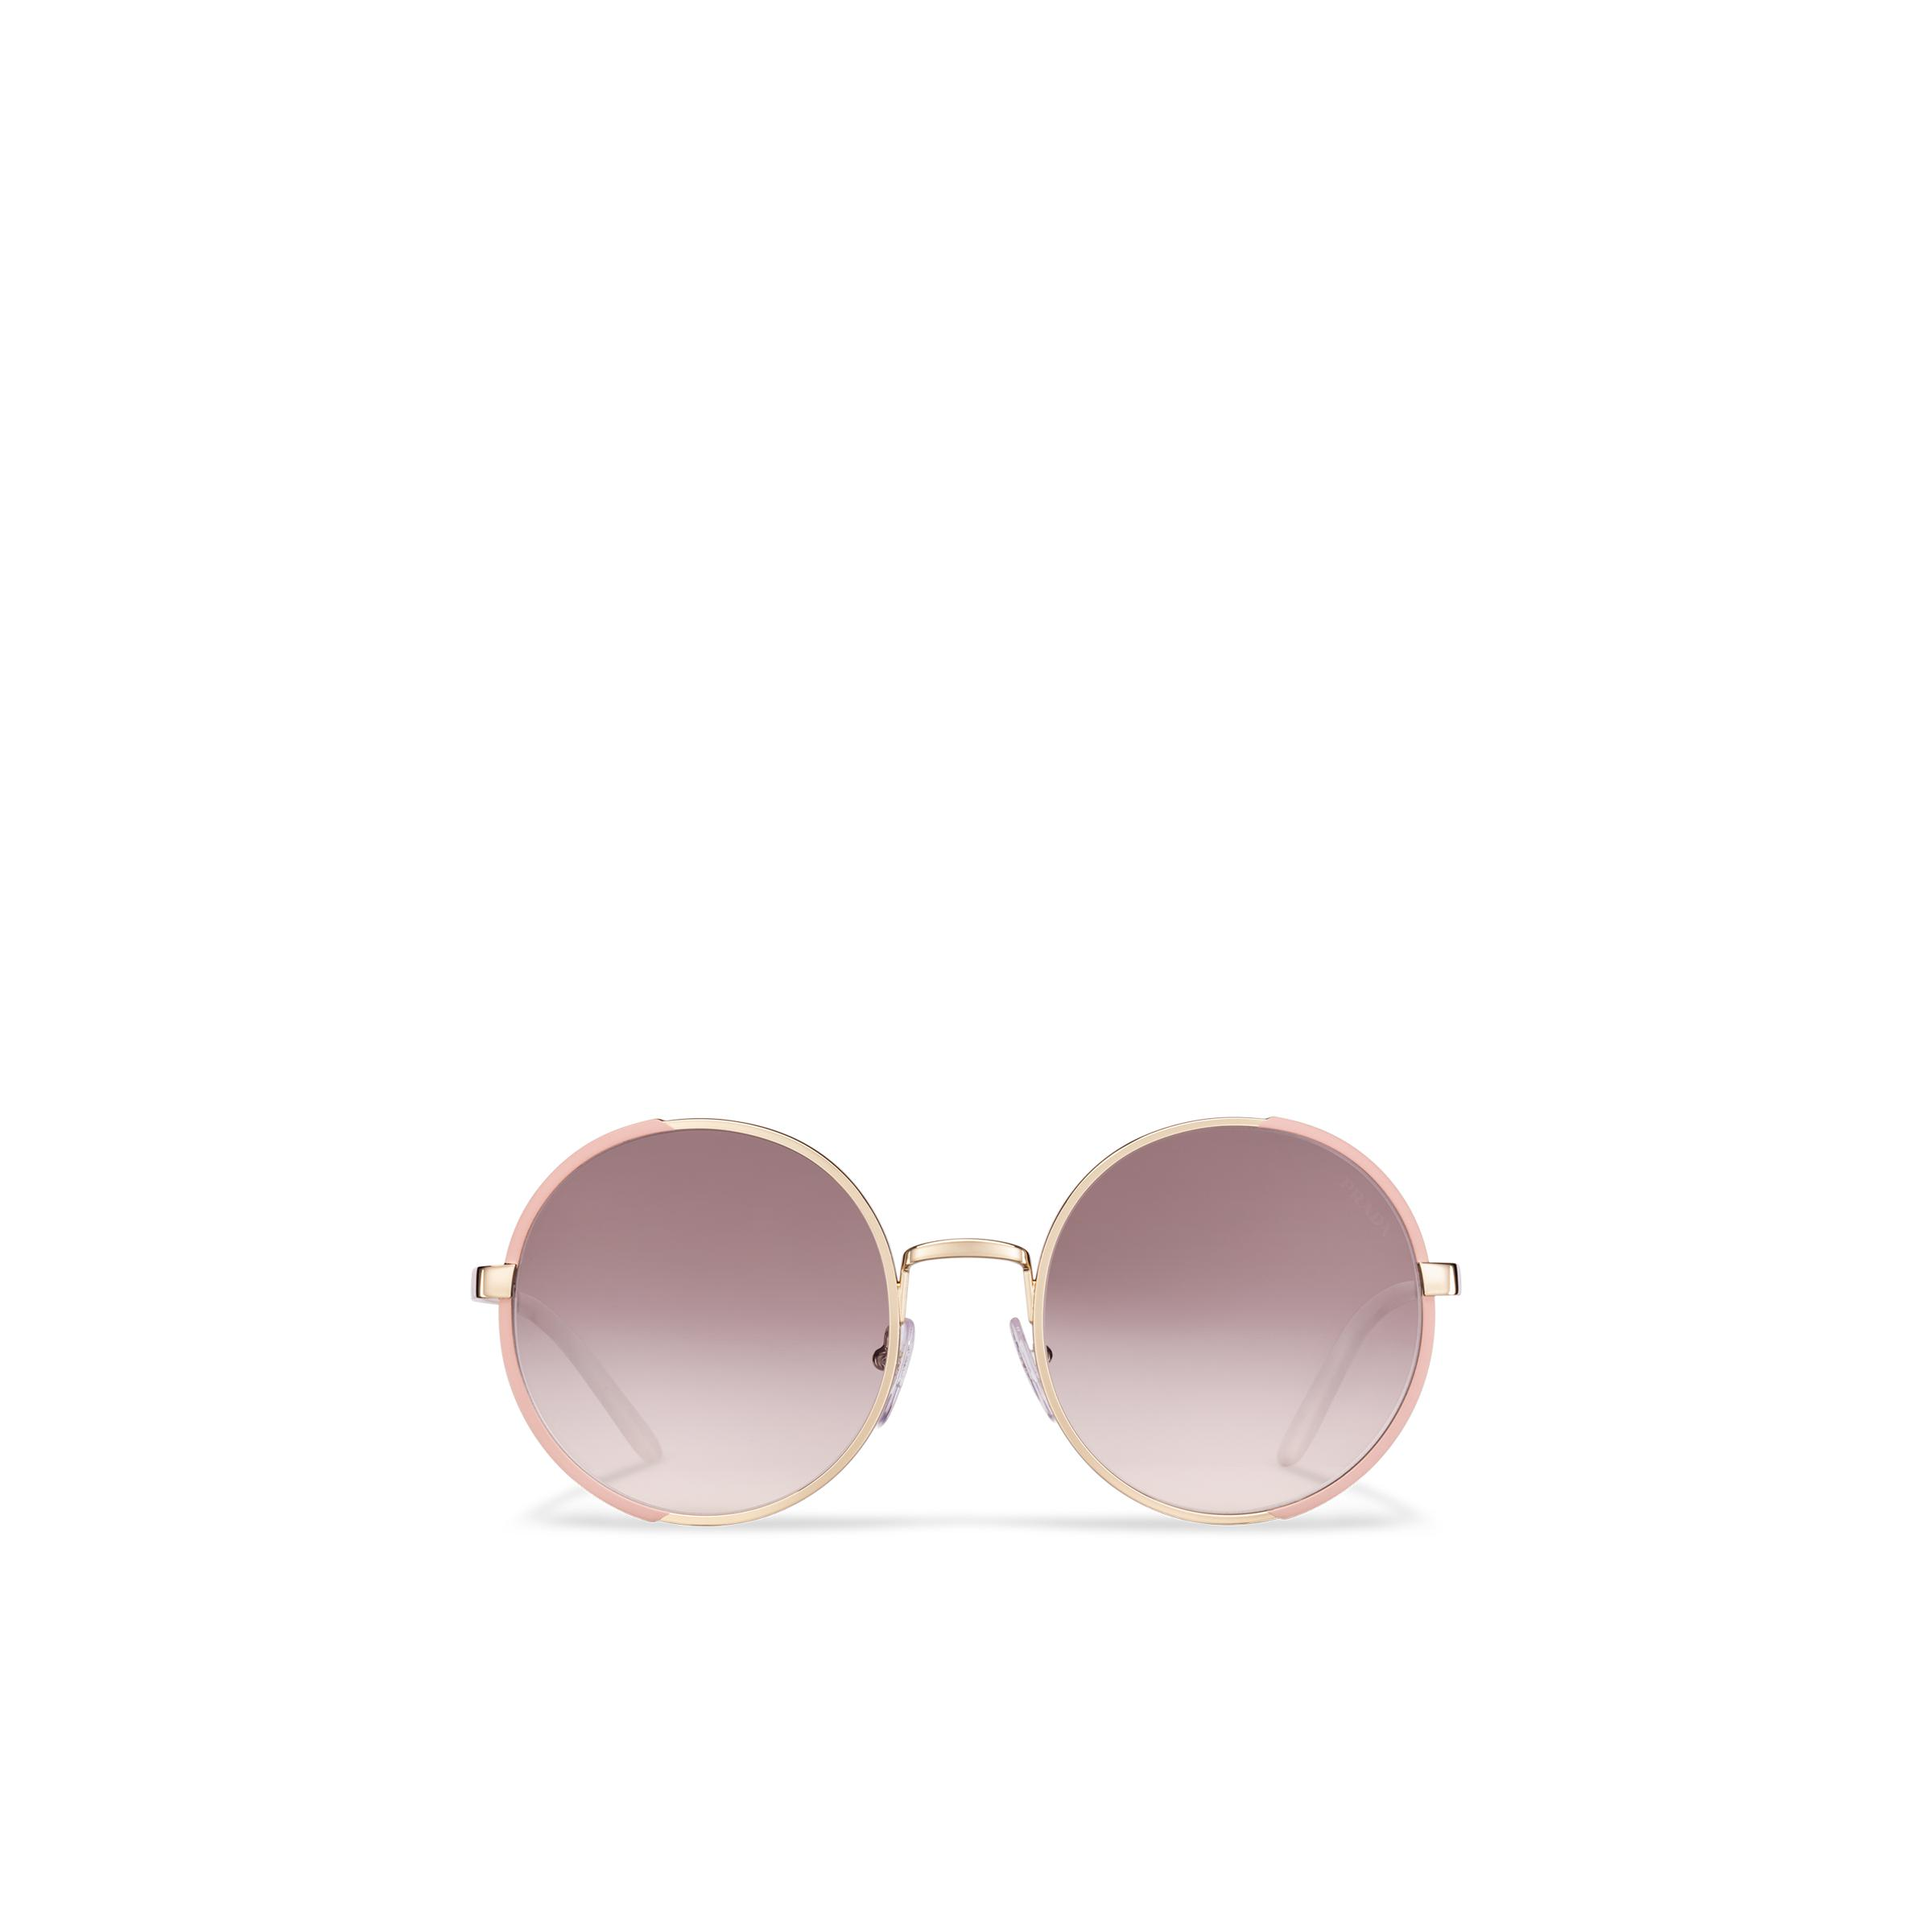 Eyewear Collection Sunglasses Women Gradient Anthracite Gray To Mauve Lenses